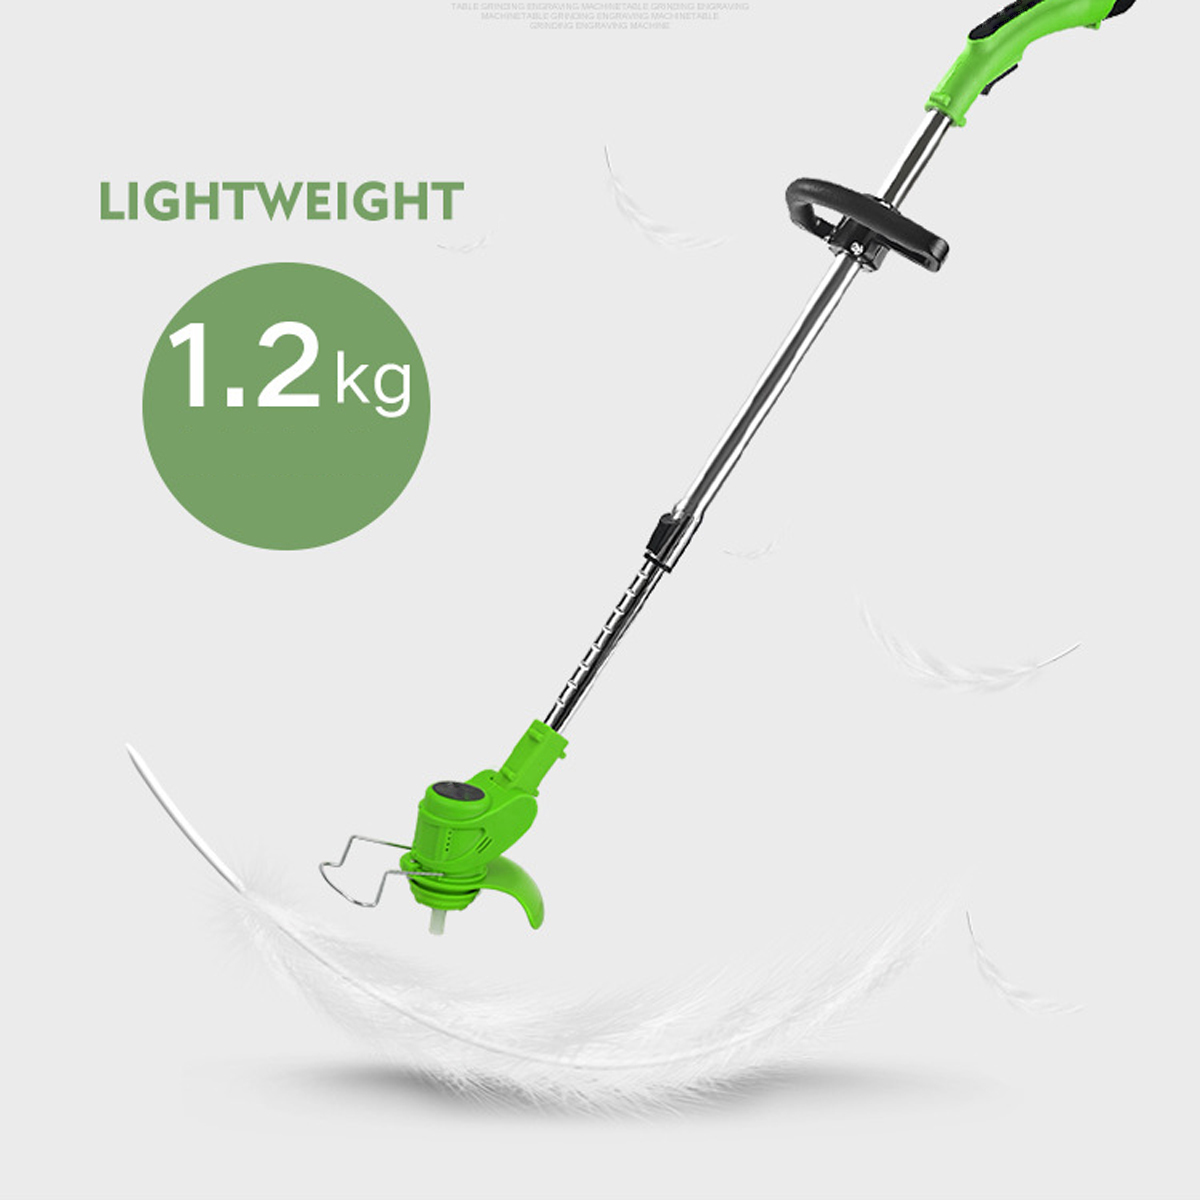 home improvement : 2 in 1 Electric Hedge Trimmer Cordless 3 6V USB Household Lawn Mower Rechargeable Weeding Shear Pruning Mower Garden Tools